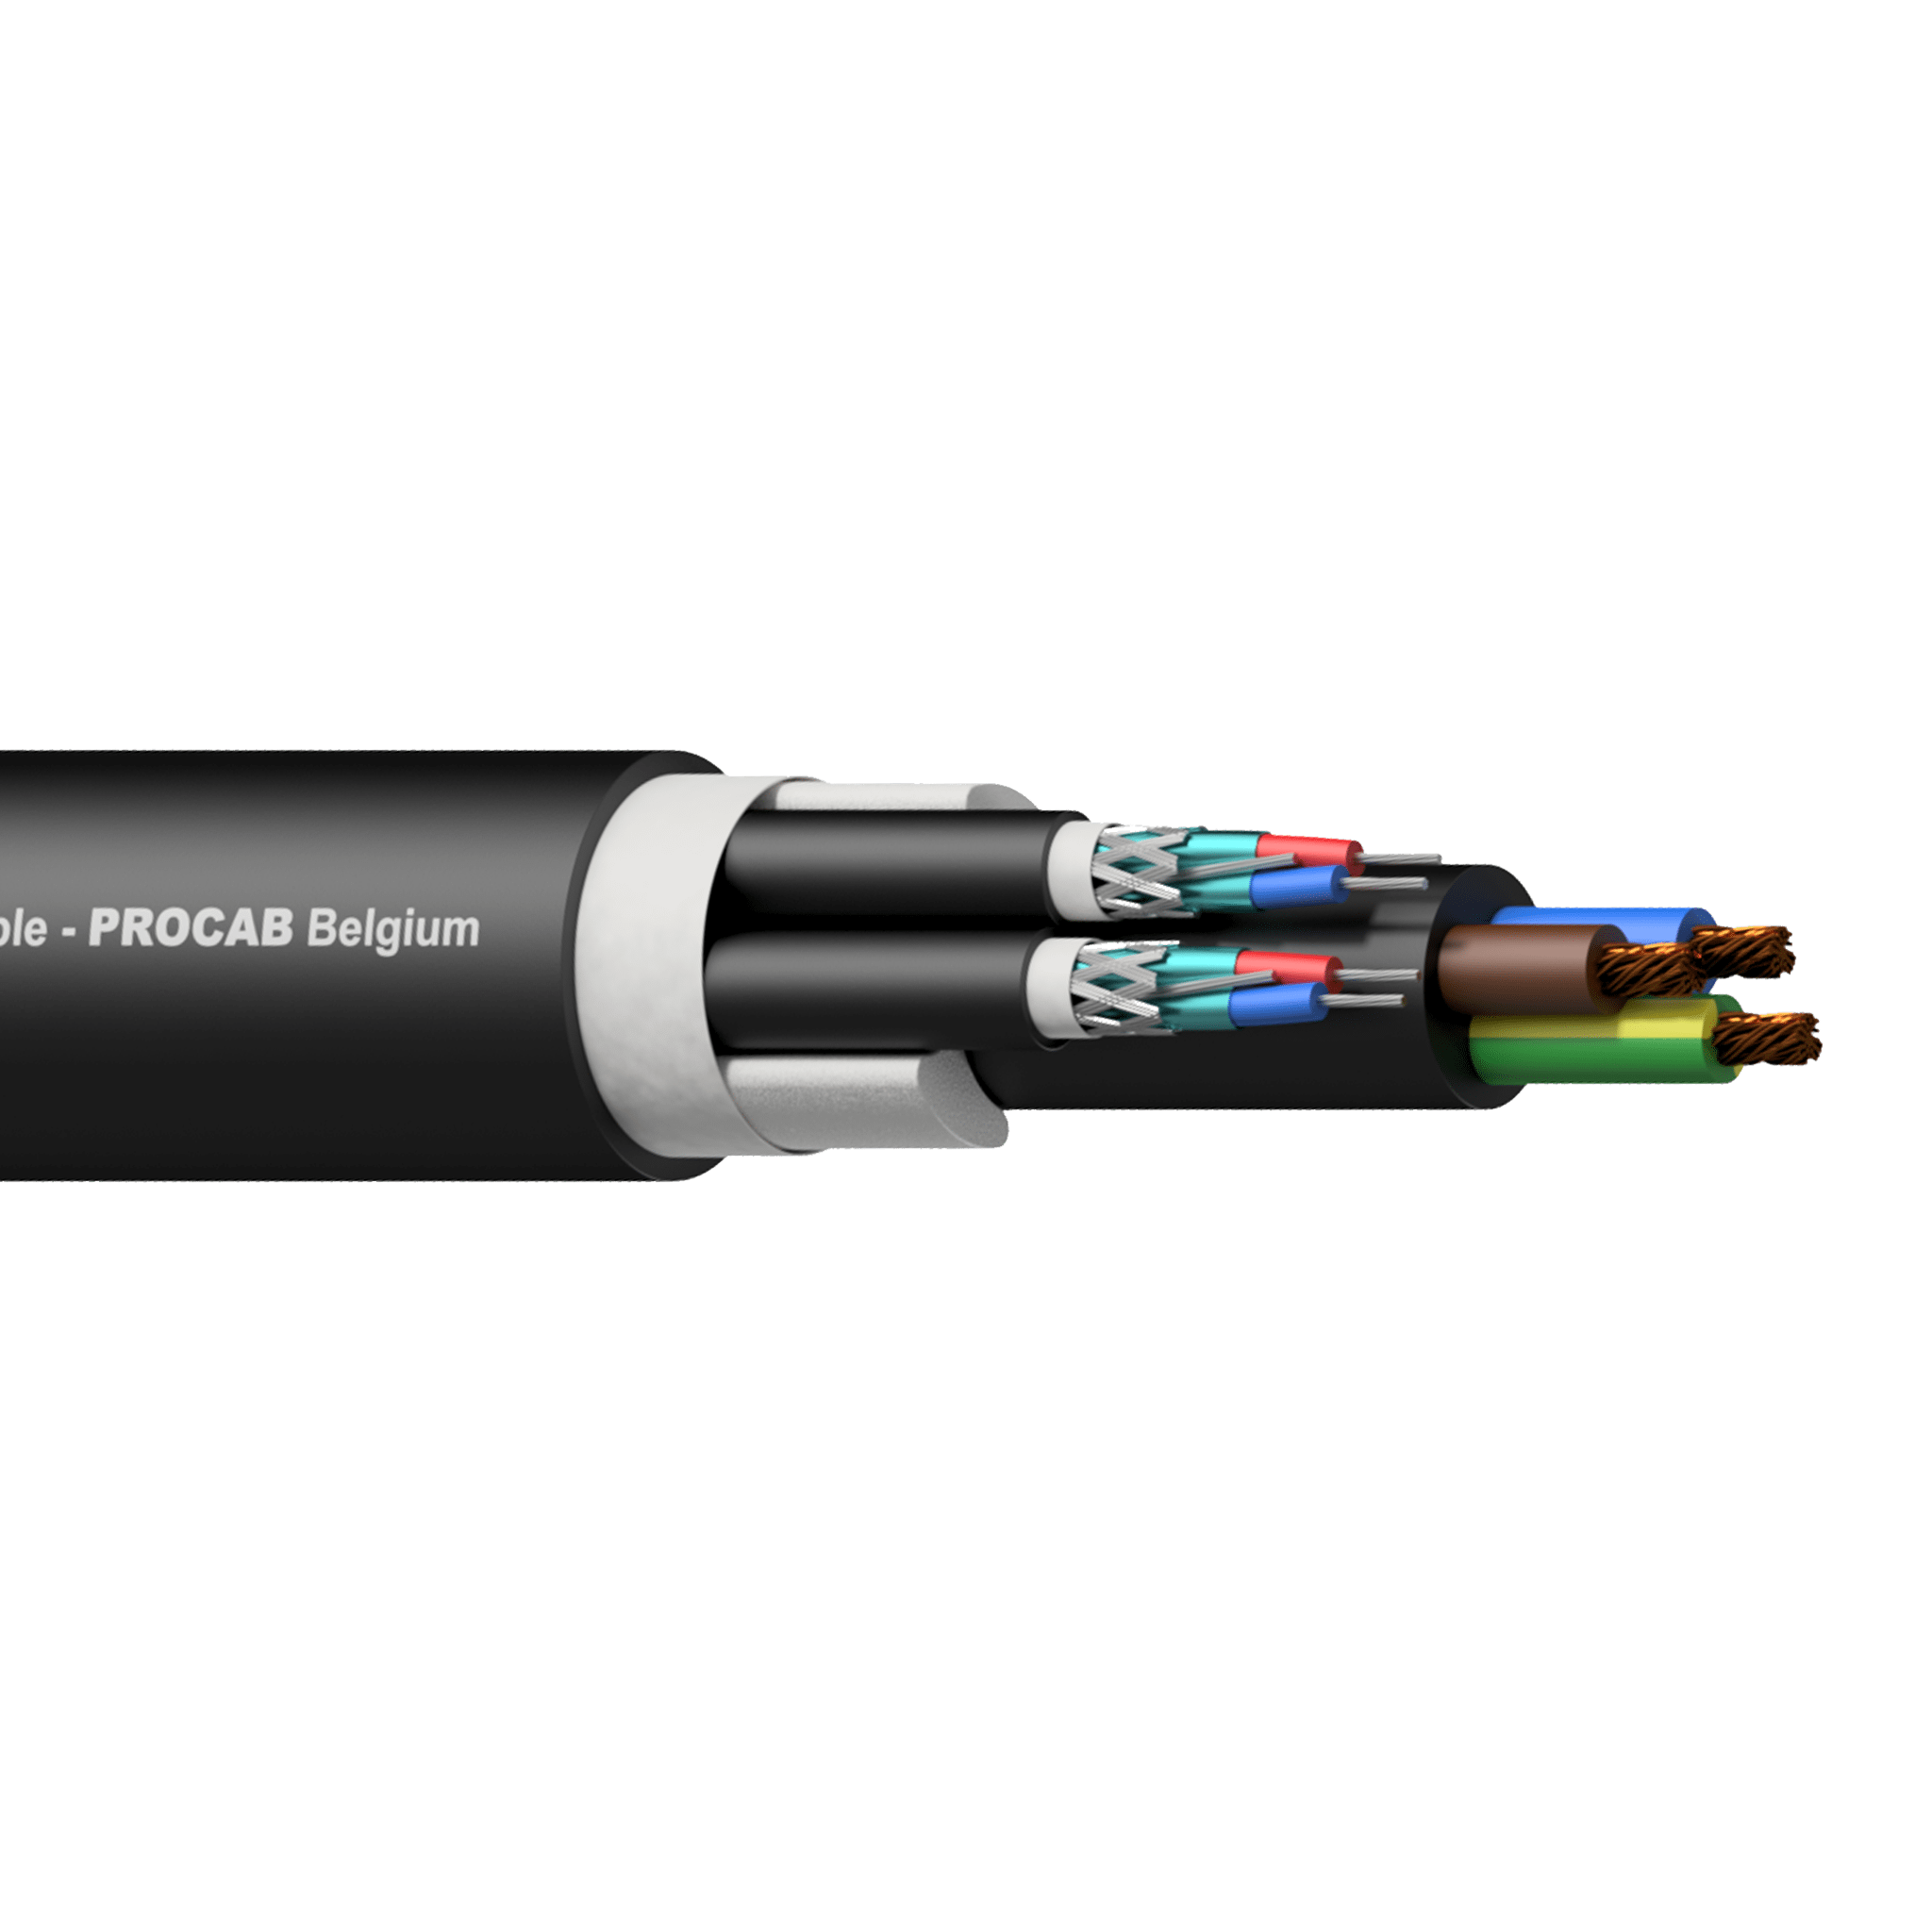 PAC252 - 2 x Balanced signal / DMX-AES & 3G2.5 Power cable